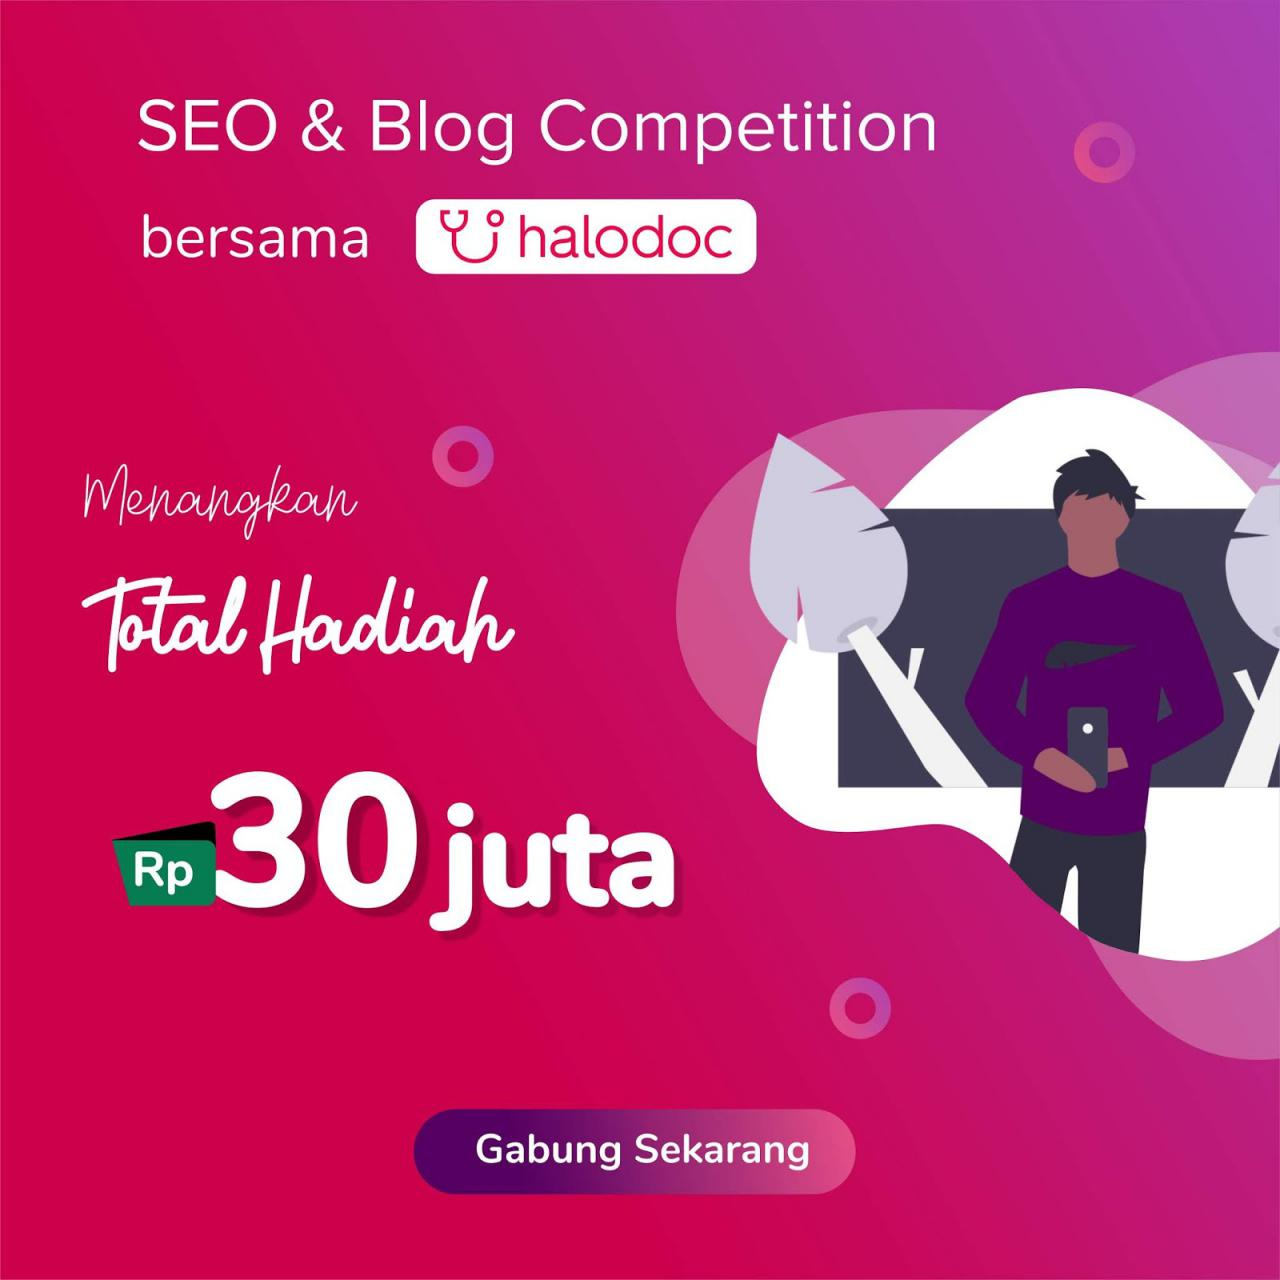 HALODOC - SEO & Blog Review Contest 2019